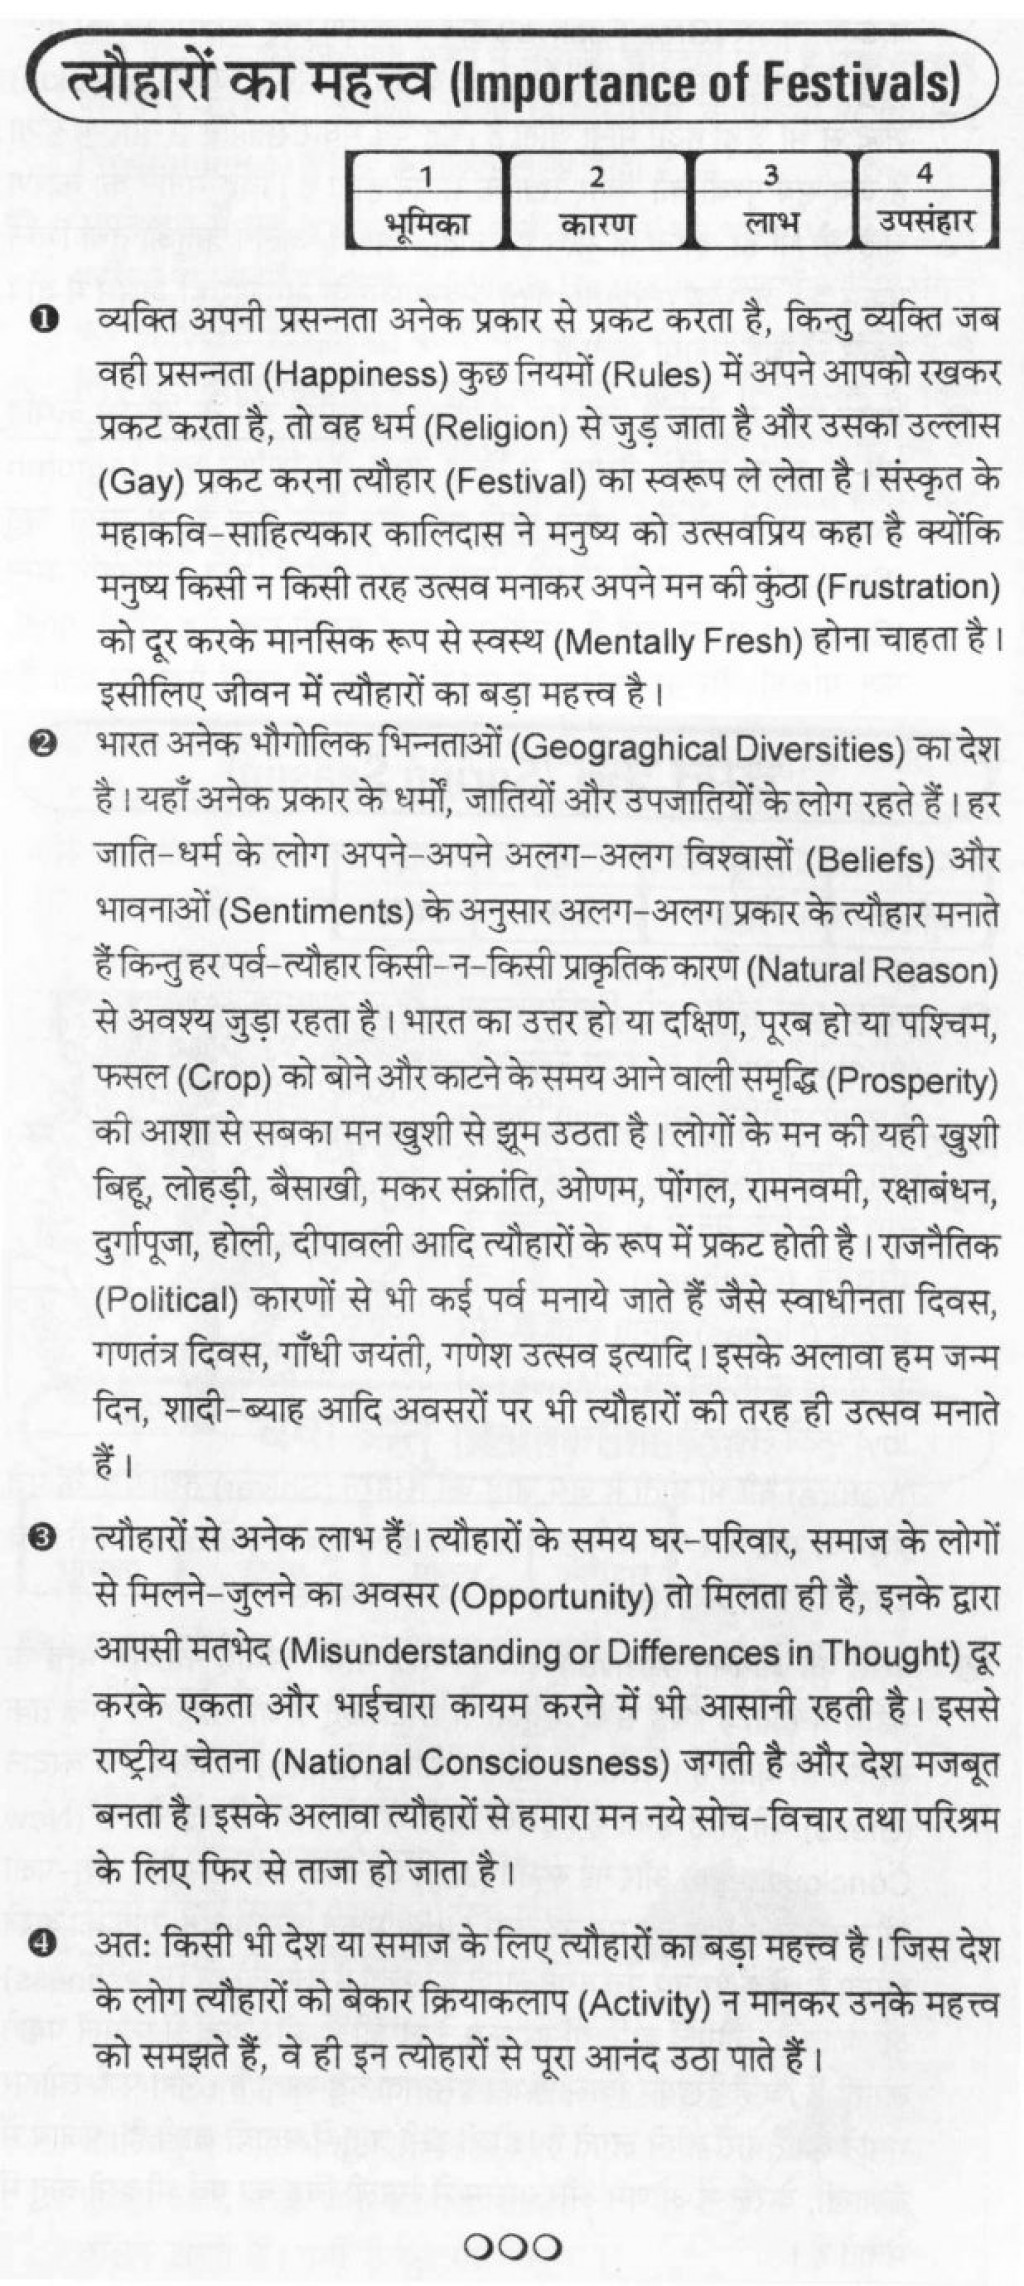 005 Essay Example Healthy Eating Habits Thumb For Class Good In Hindi English Words On 618x1380 Best Food 10 My Favourite 1 Tamil Large